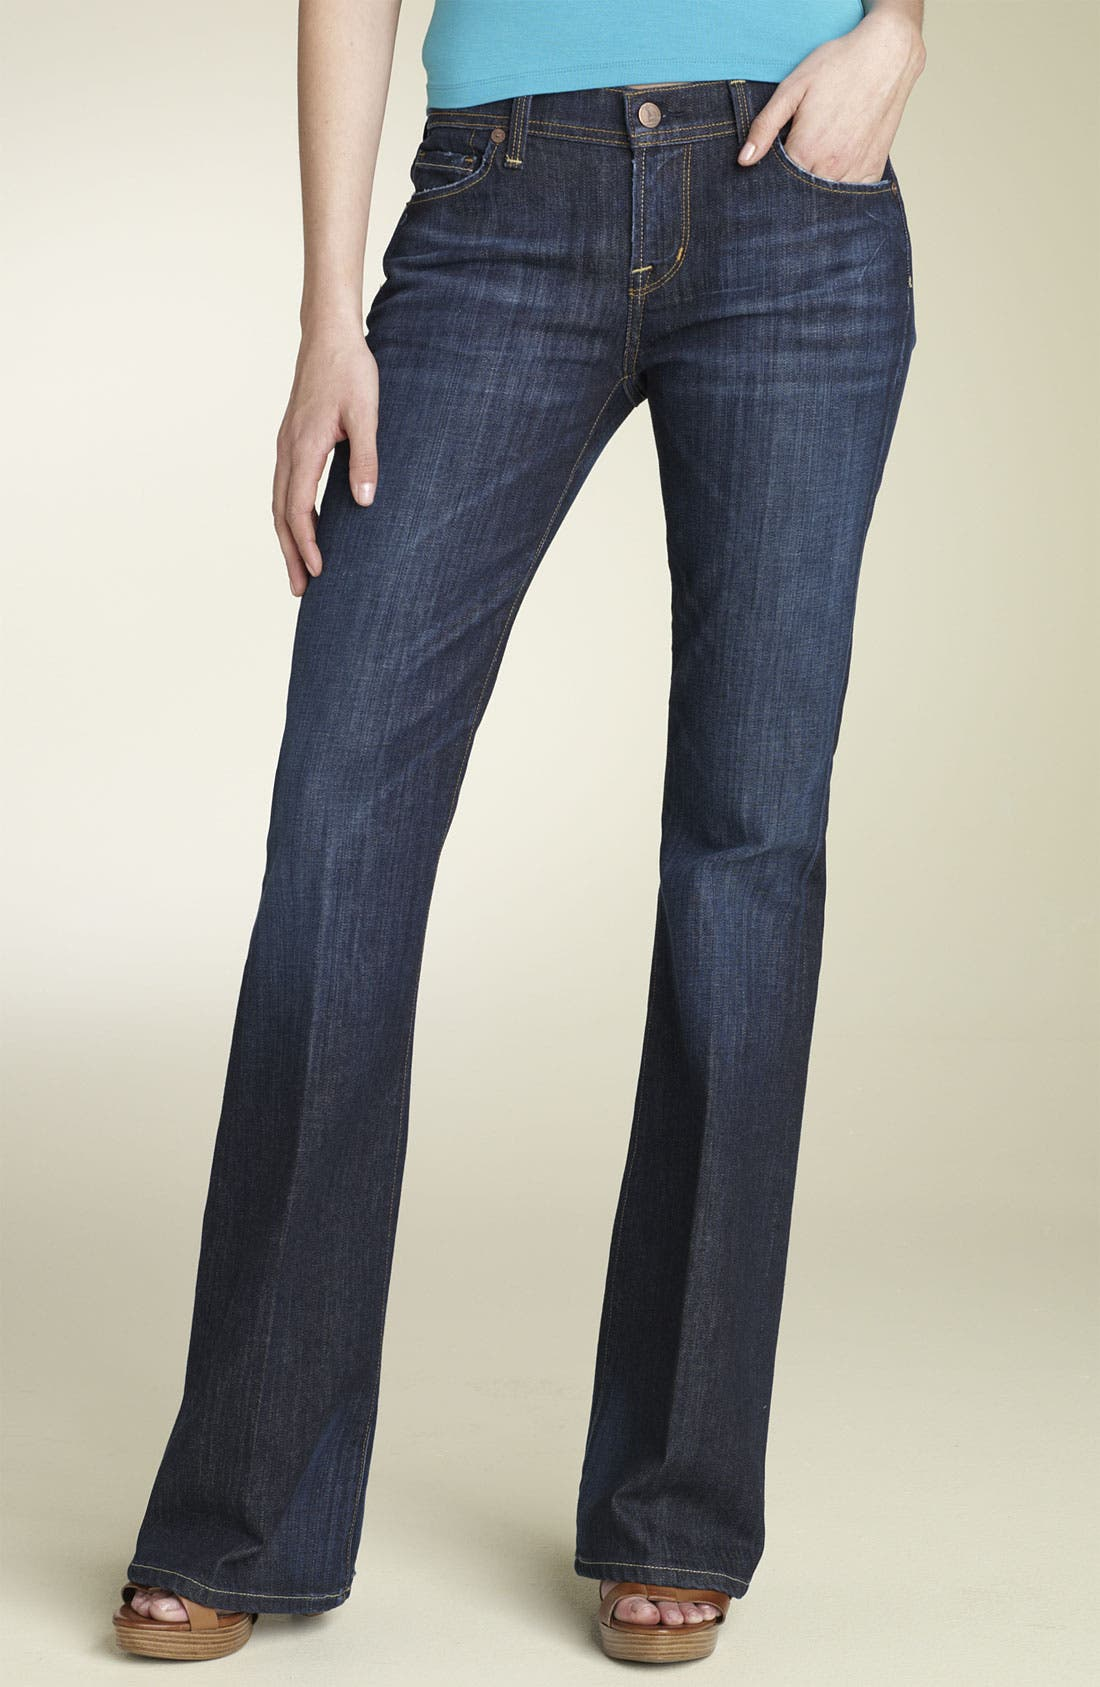 'Ingrid' Stretch Jeans,                             Alternate thumbnail 2, color,                             404